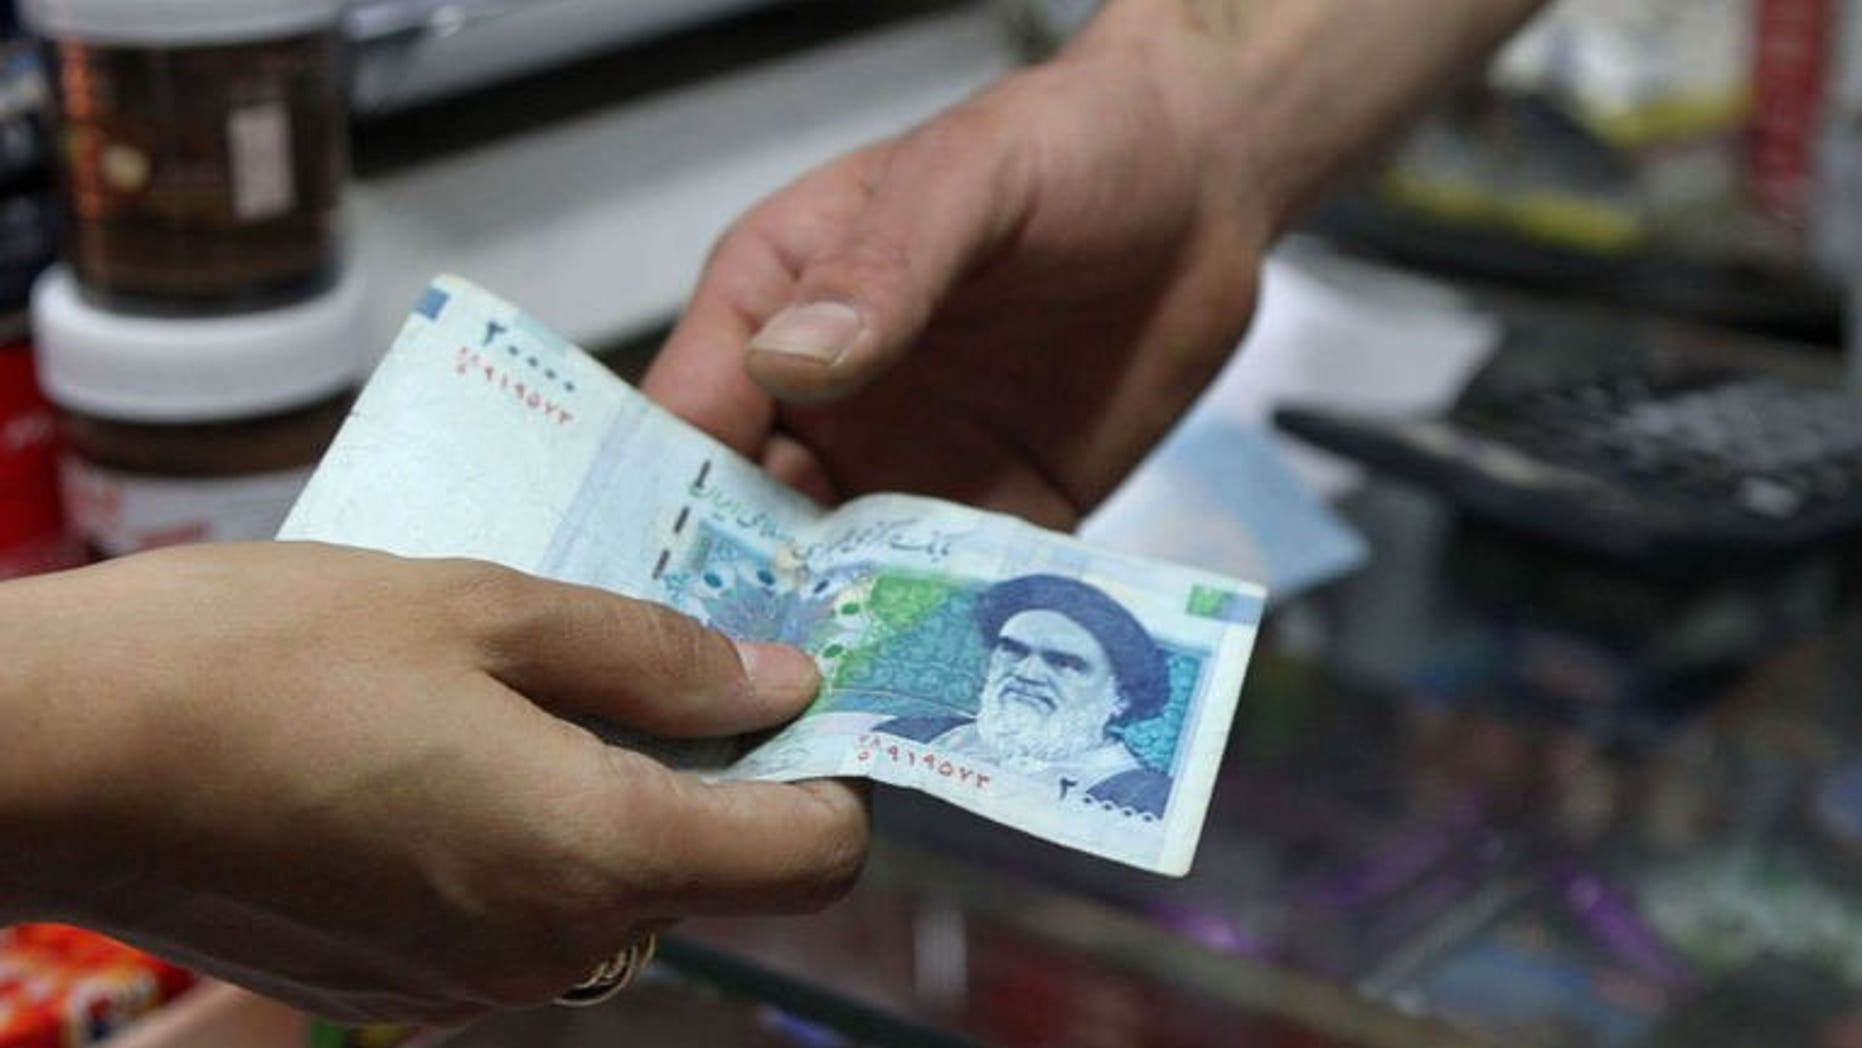 An Iranian woman pays with a 20000 rial banknote in Tehran on September 30, 2012. Iran's central bank on Saturday drastically devalued the national currency's fixed subsidised rate against the dollar, as the Islamic republic struggles to shore up its faltering economy.